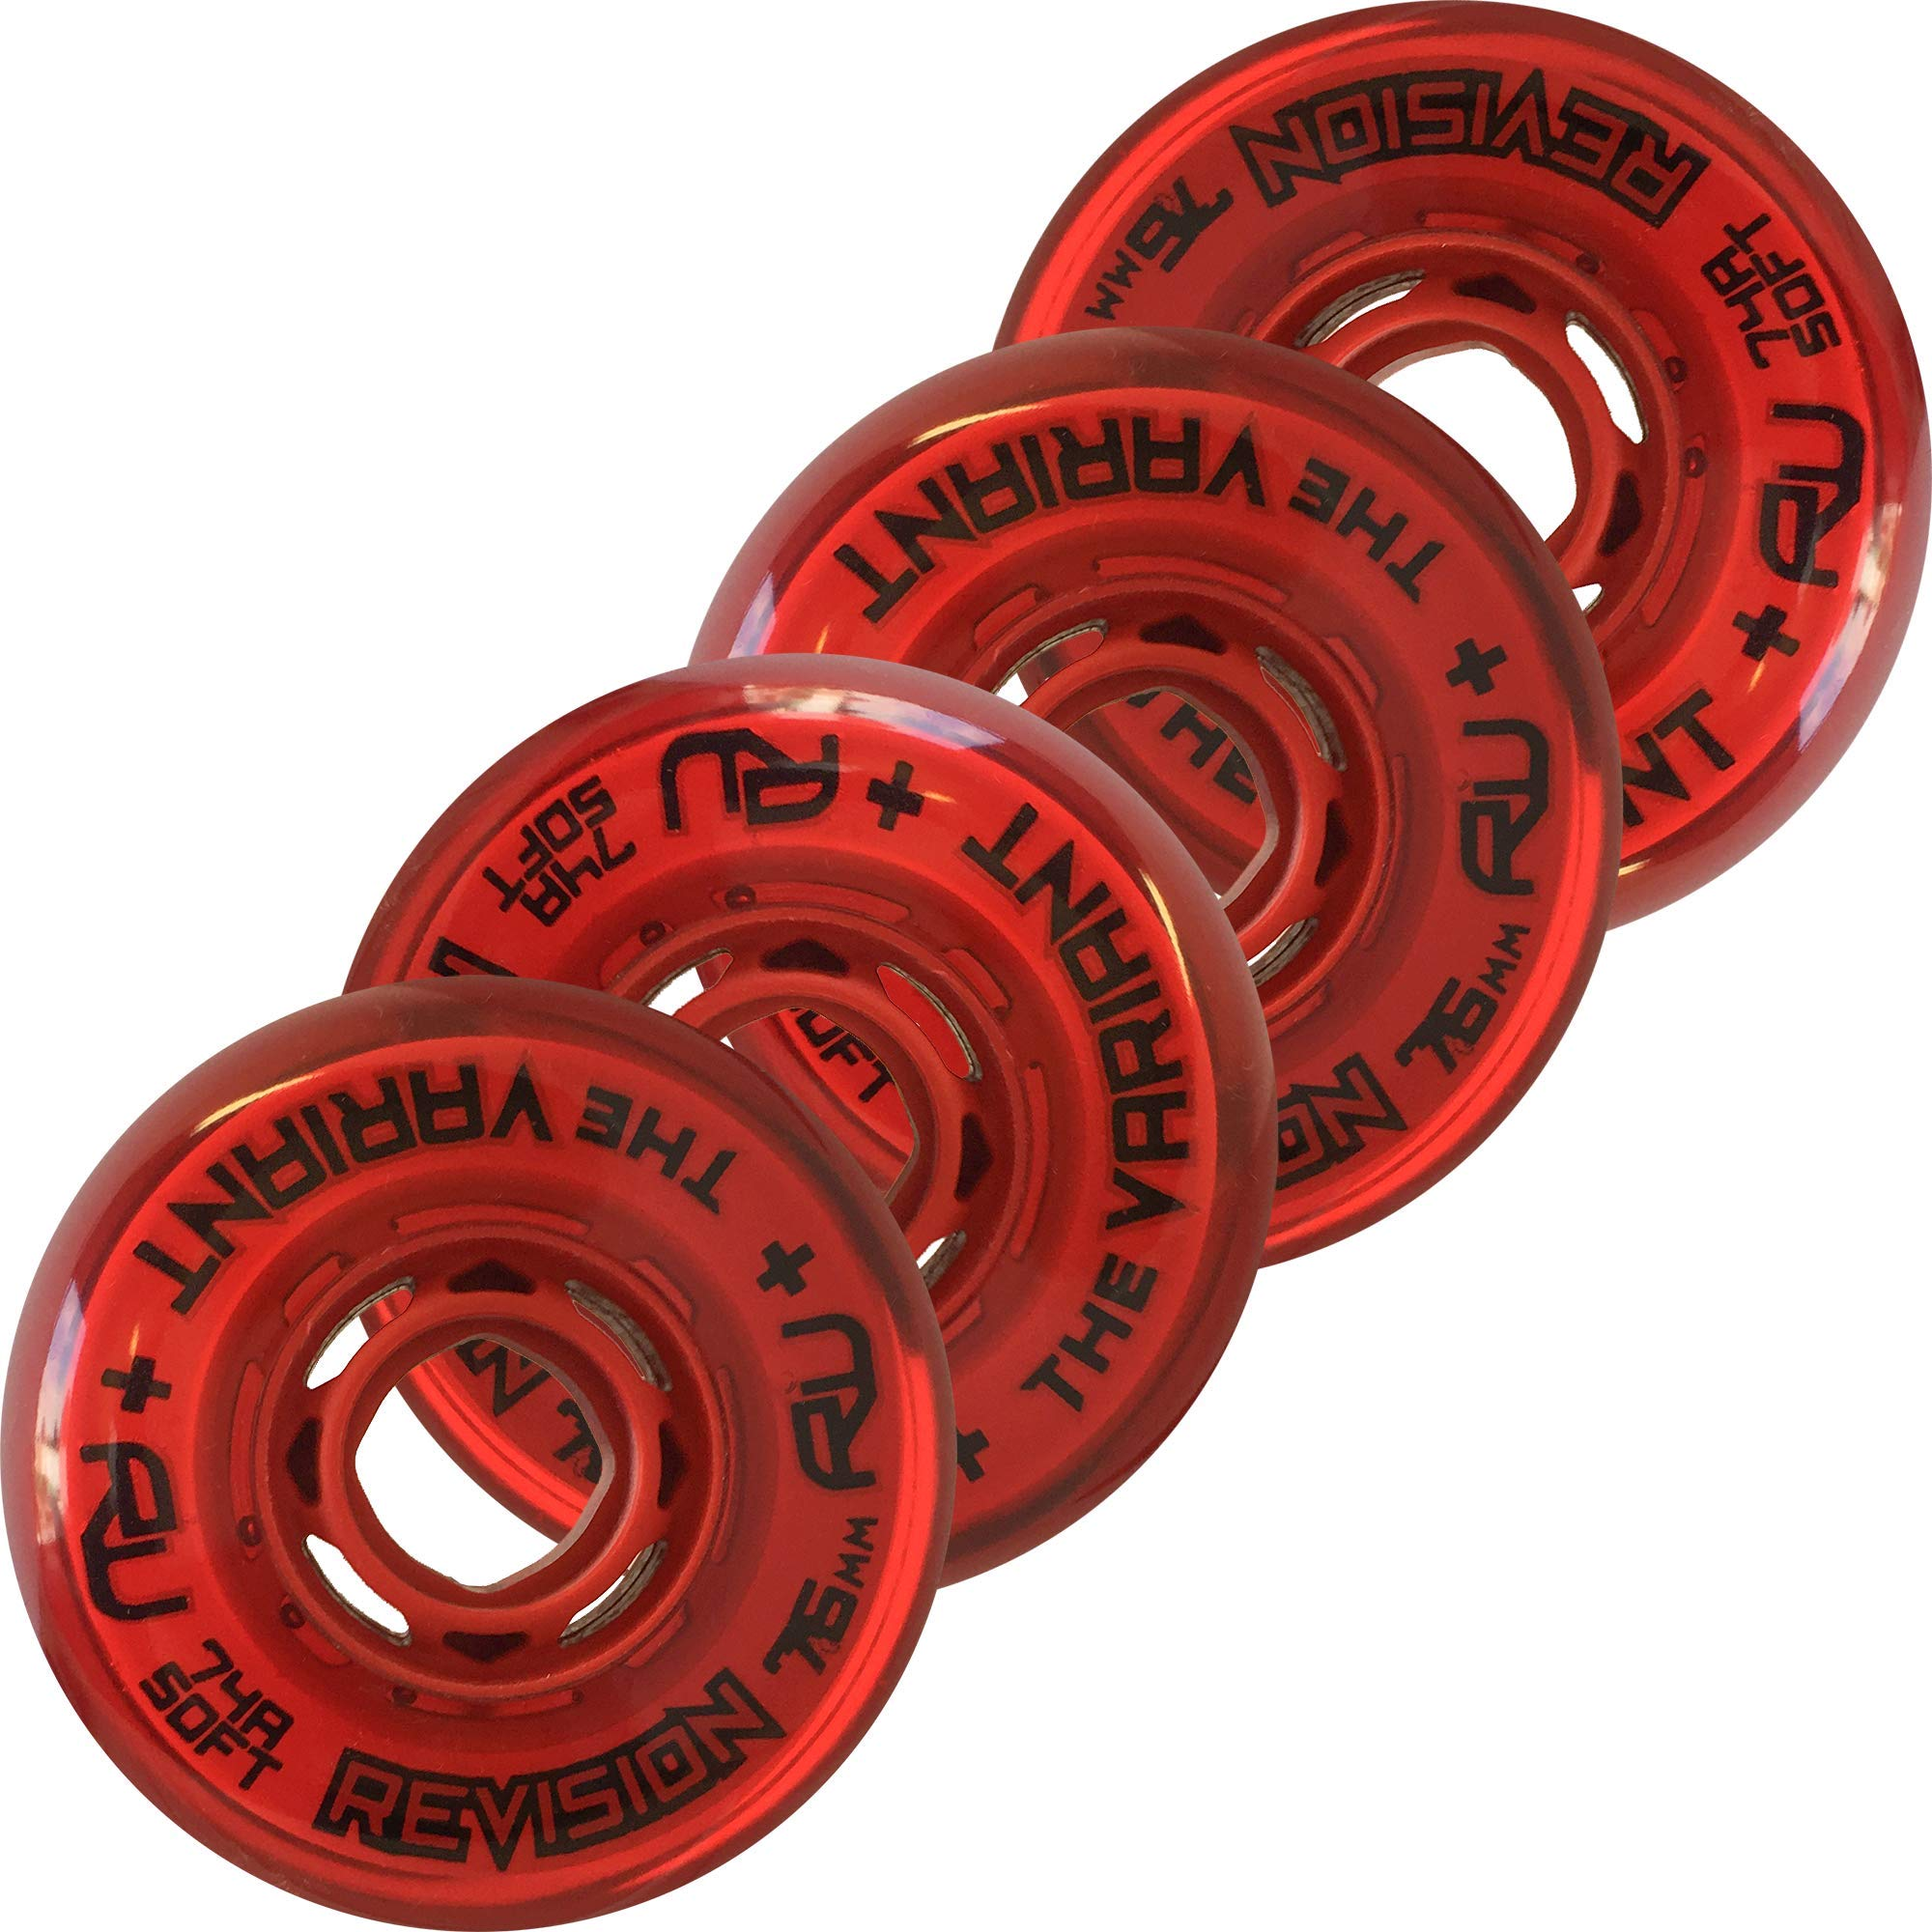 Revision Variant Indoor Inline Roller Hockey Wheel - 74A - 76mm Soft 4 Pack - Red by Revision Hockey